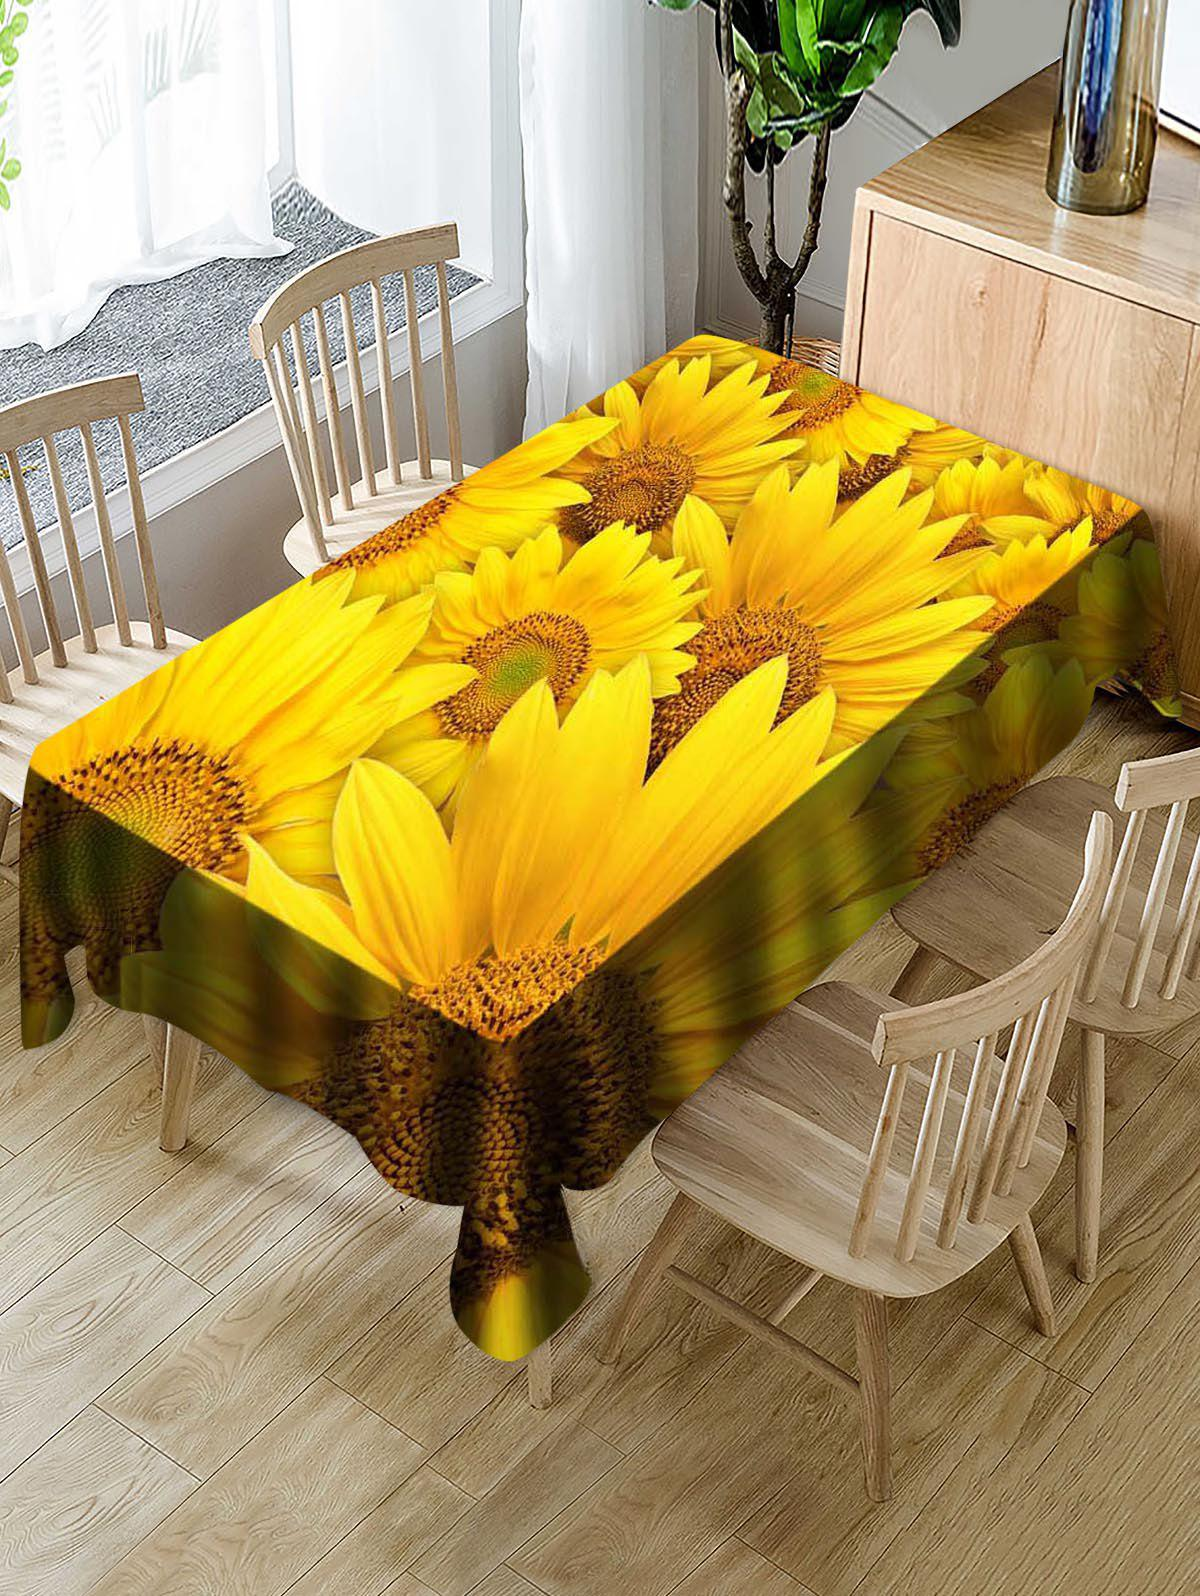 Sale Sunflowers Print Waterproof Decorations Table Cloth